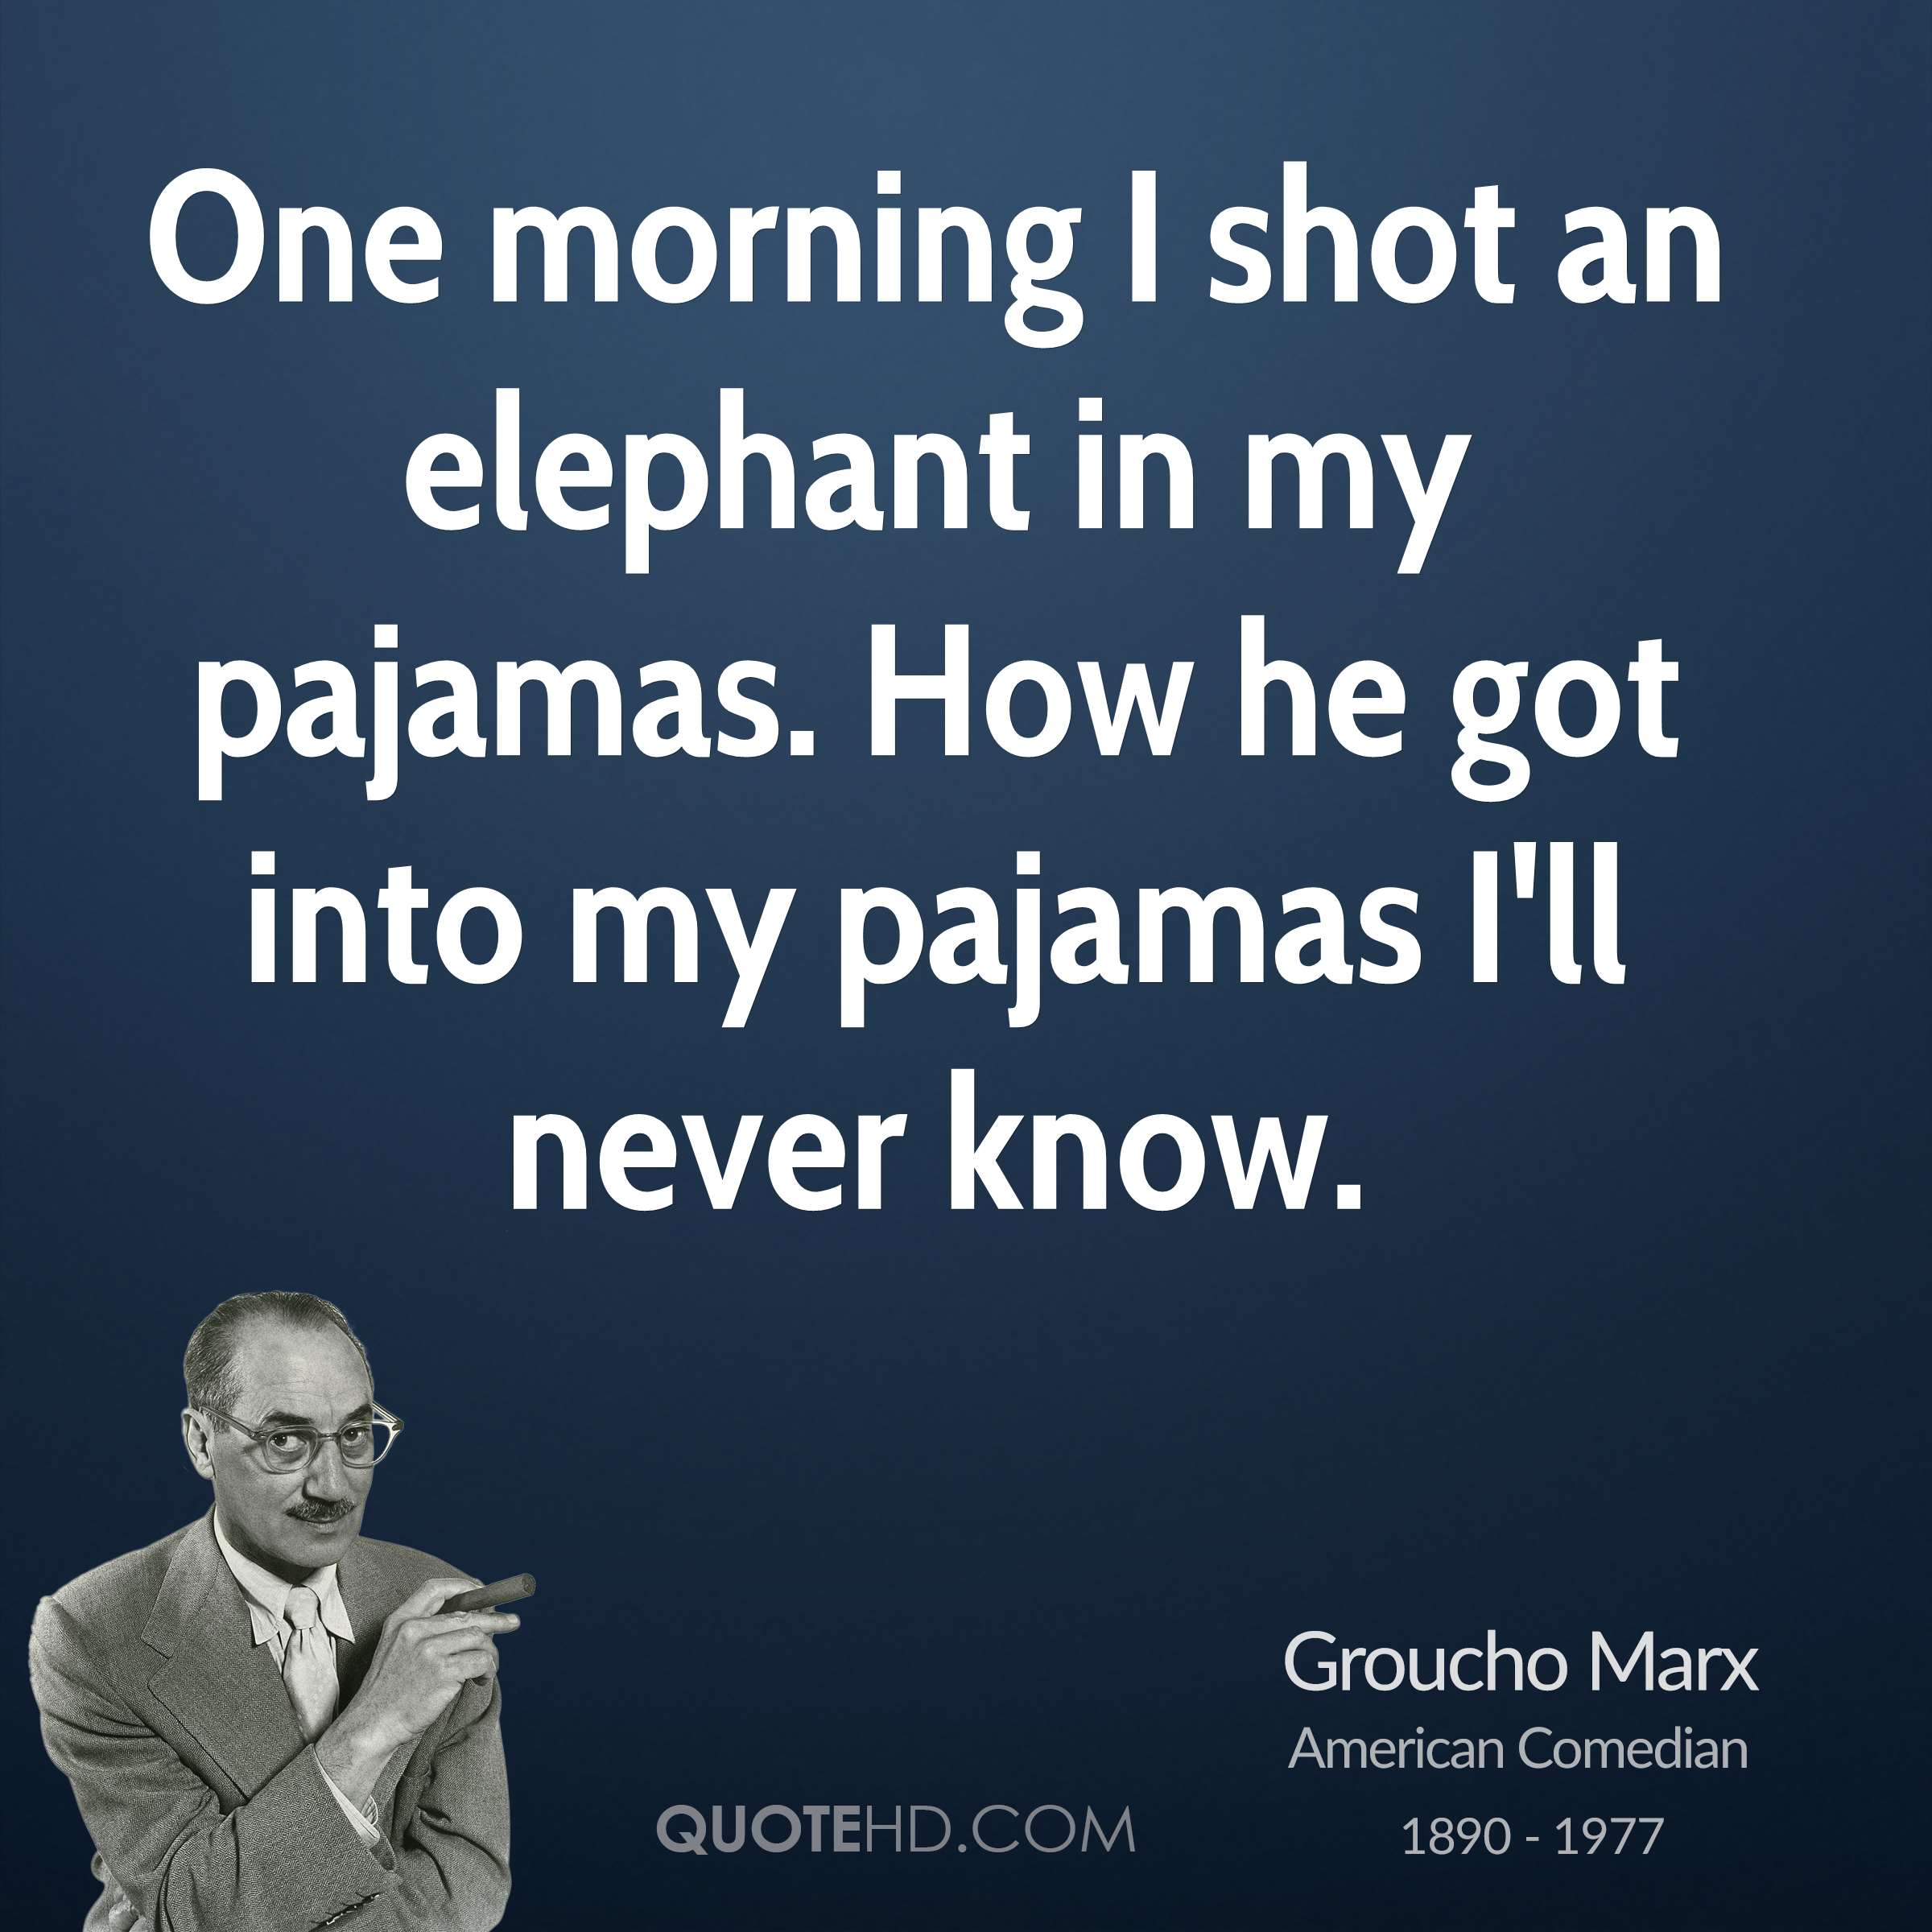 One morning I shot an elephant in my pajamas. How he got into my pajamas I'll never know.